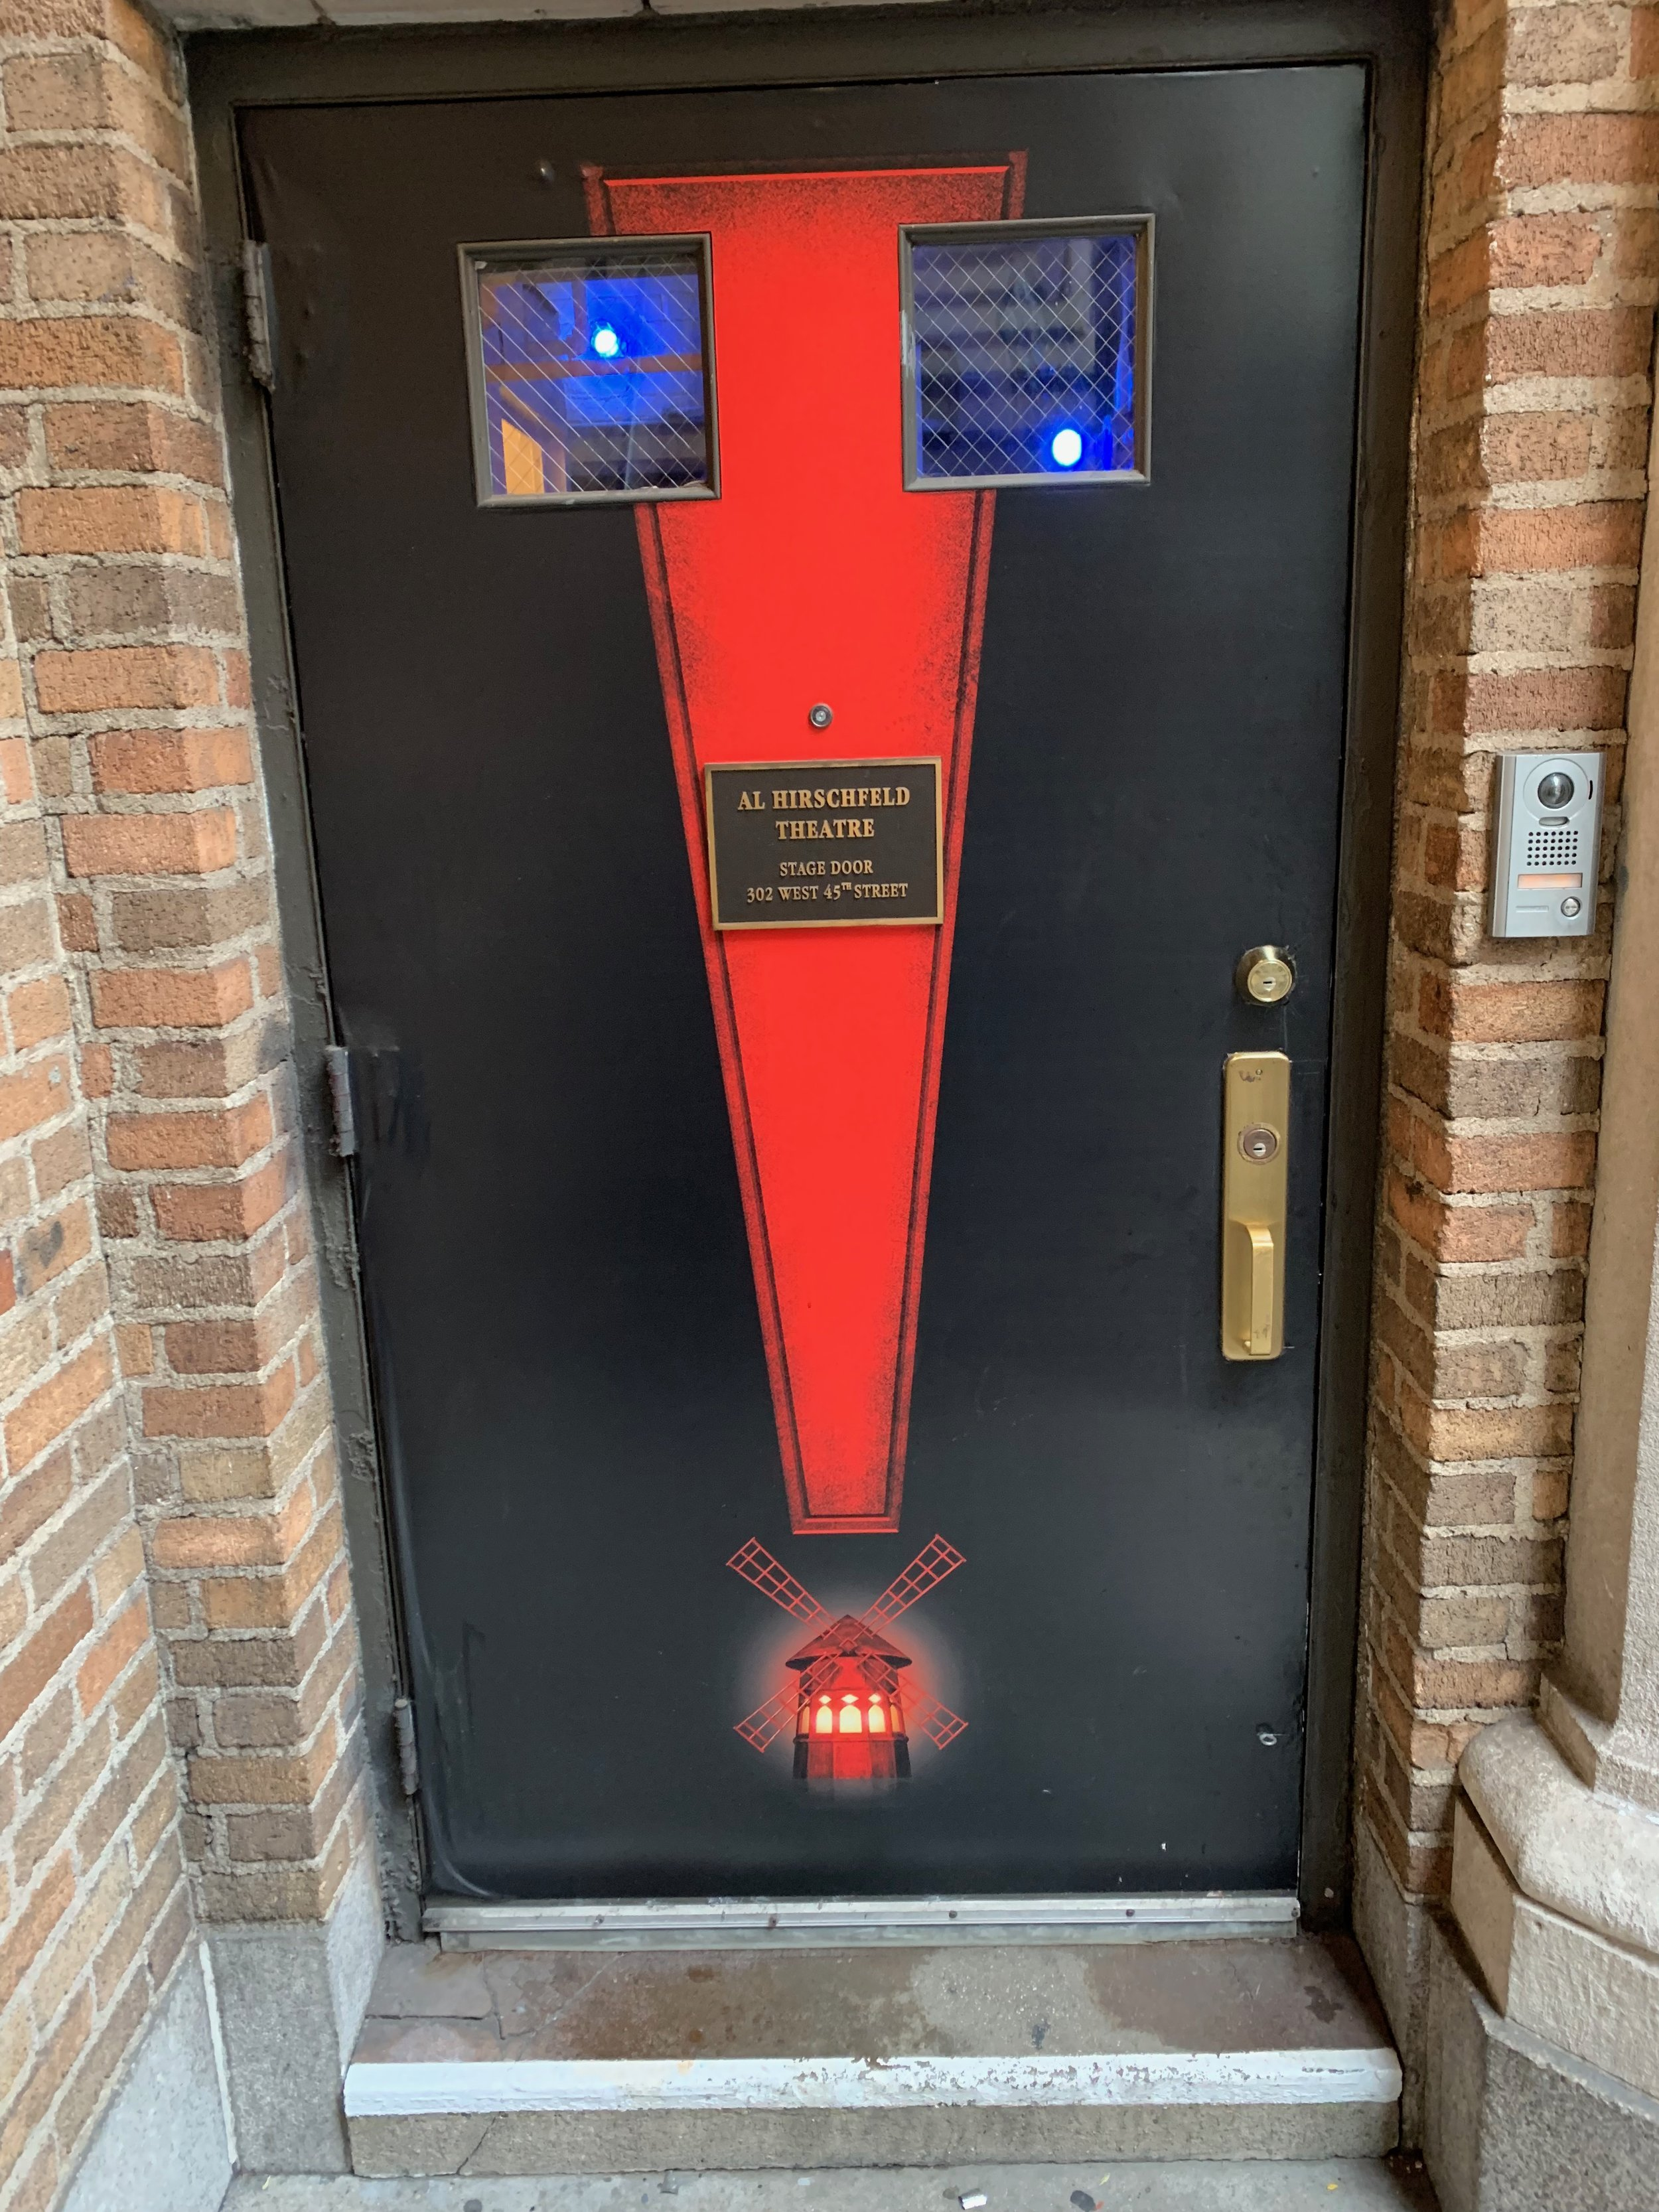 7/18/19 - Heading through this door for our final preview rehearsal at Moulin Rouge!